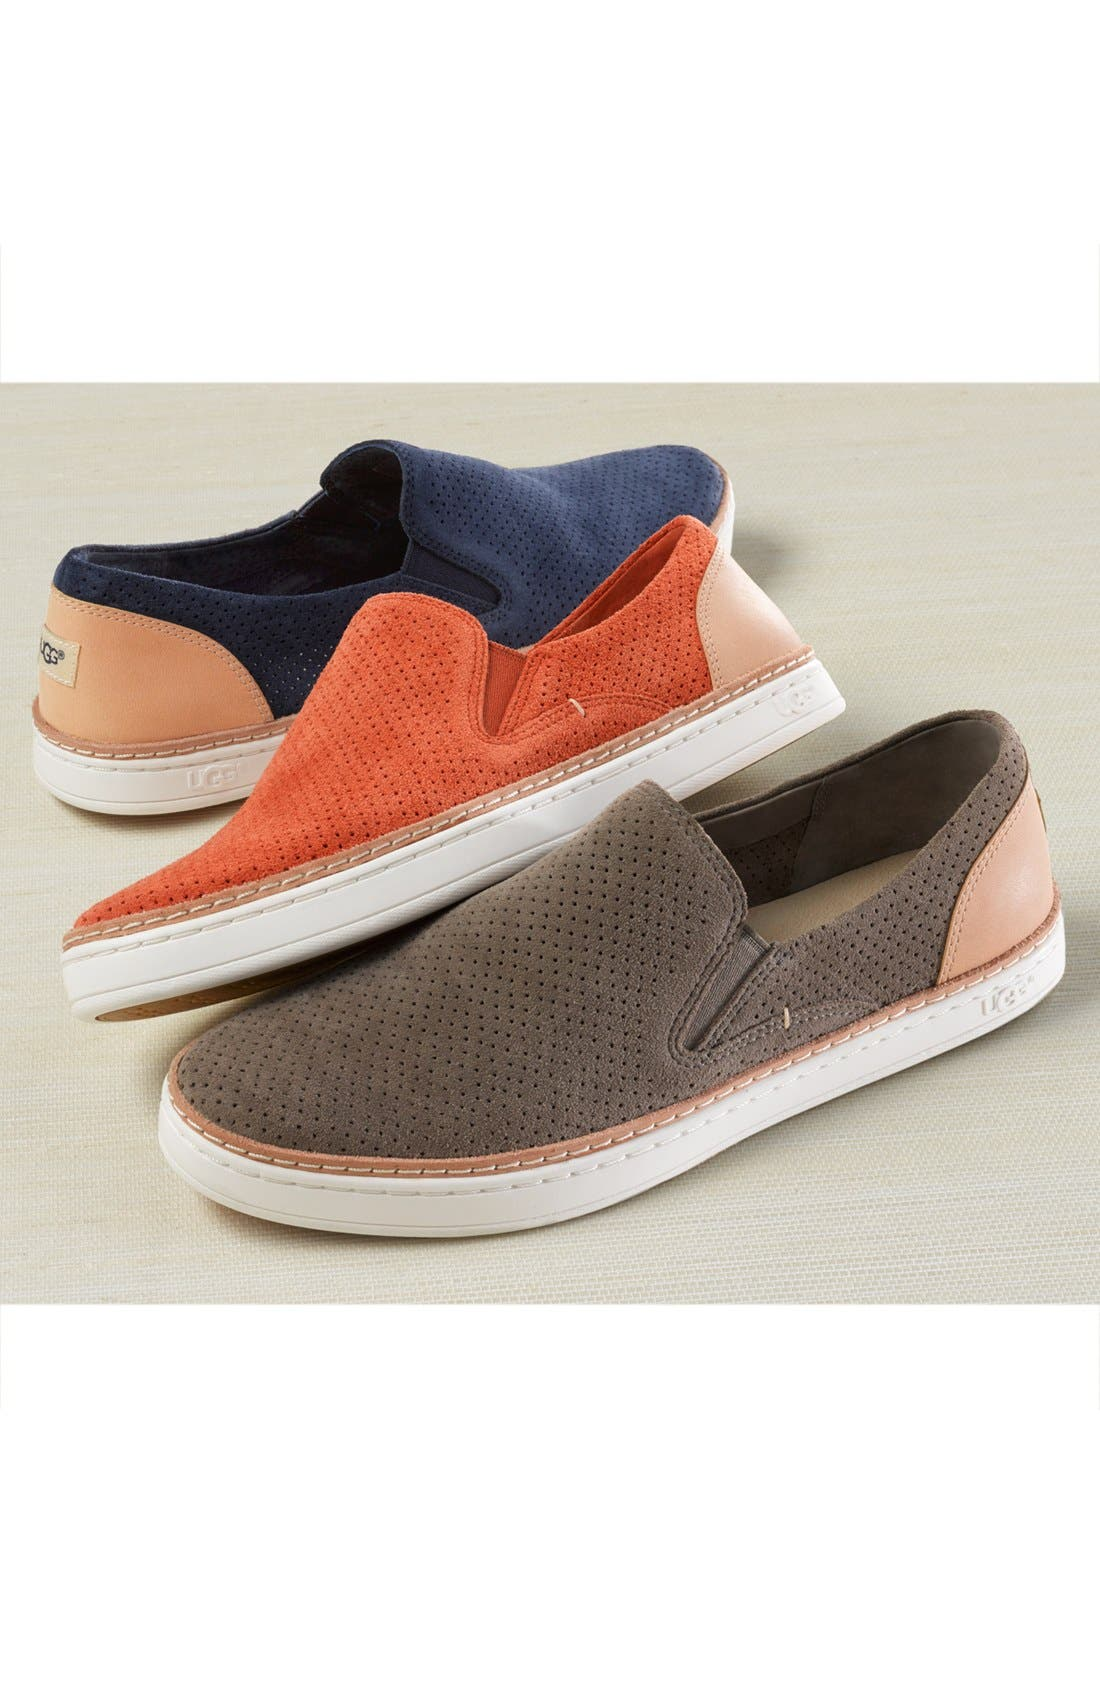 Adley Slip-On Sneaker,                             Alternate thumbnail 7, color,                             001